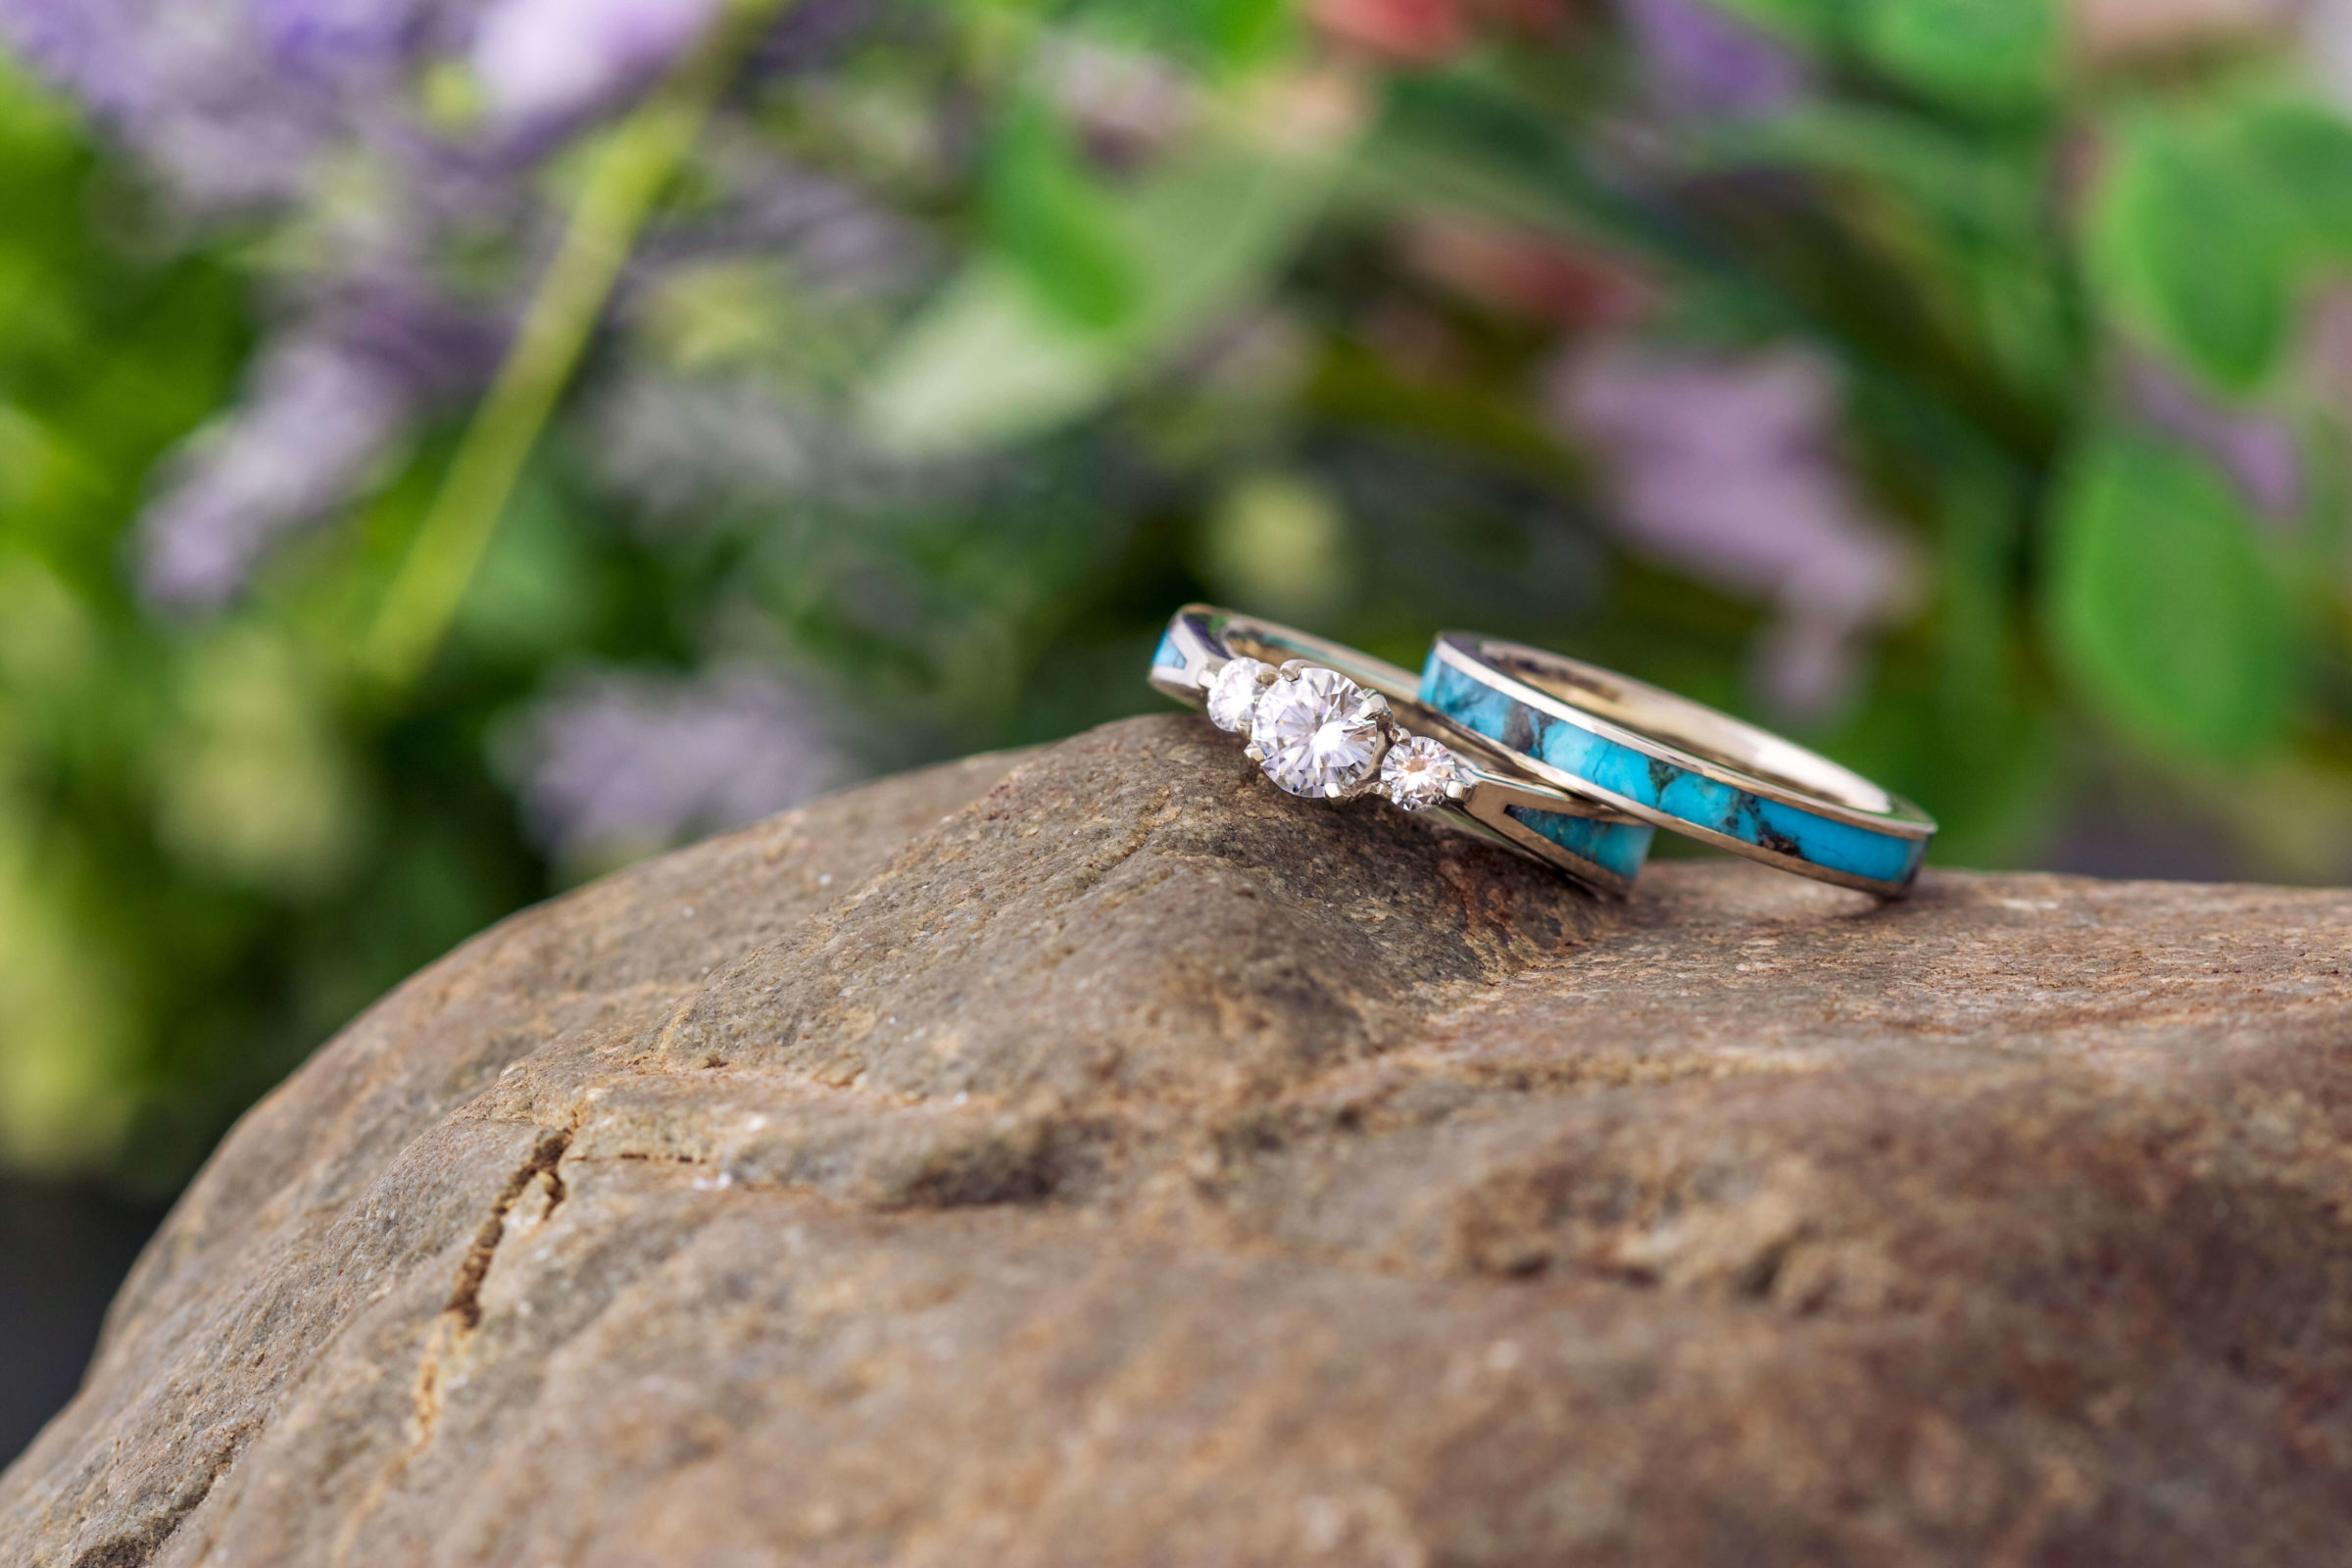 Blue speckled wedding band in choosing a wedding ring to go with an engagement ring